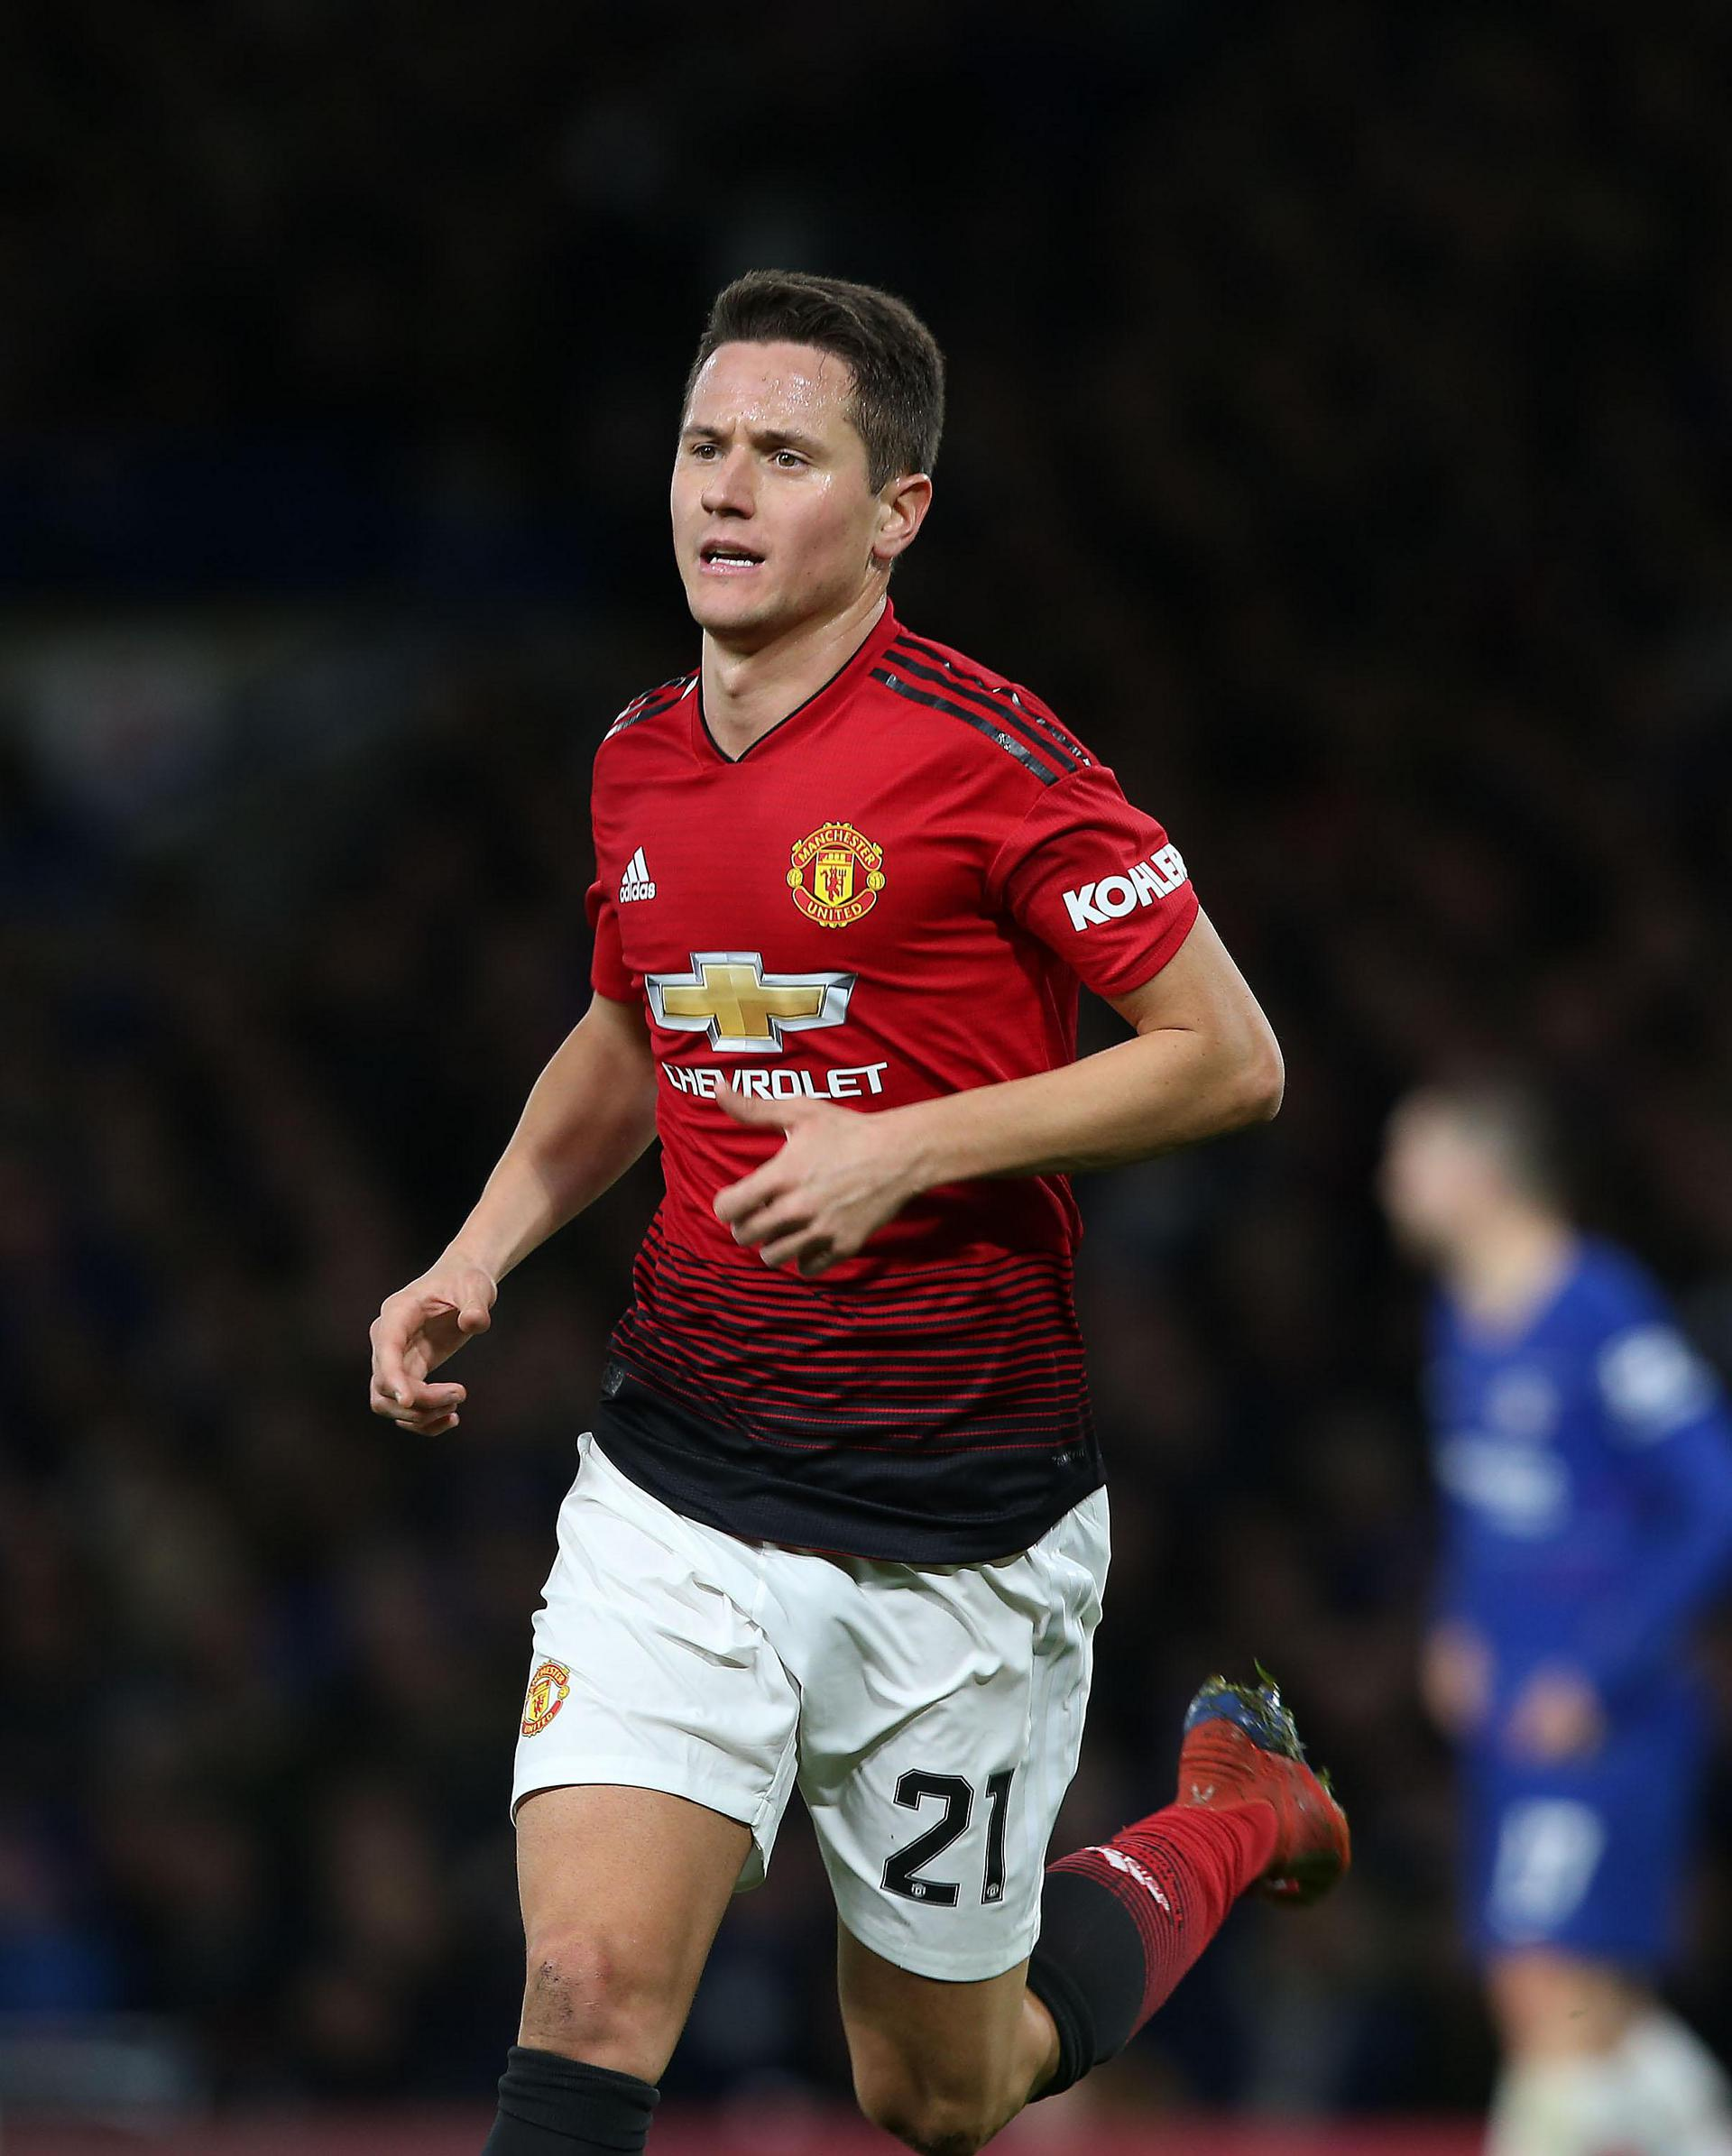 Ander Herrera in action.